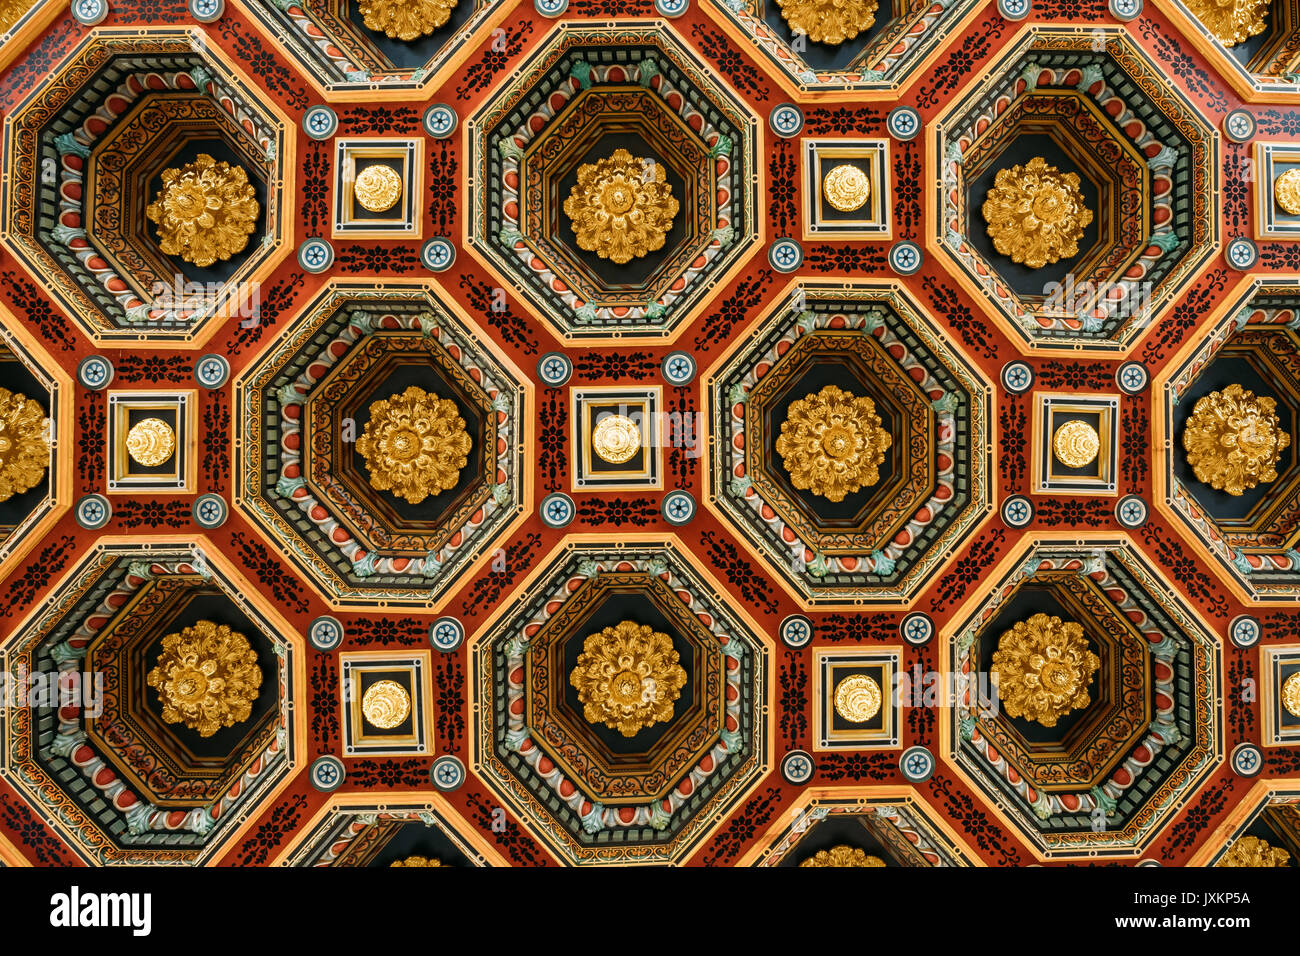 Mir, Belarus. Ceiling Roof In The Dining Room Izba In Castle Complex Museum. Famous Landmark, Architectural Ensemble Of Feudalism, Ancient Cultural Mo - Stock Image